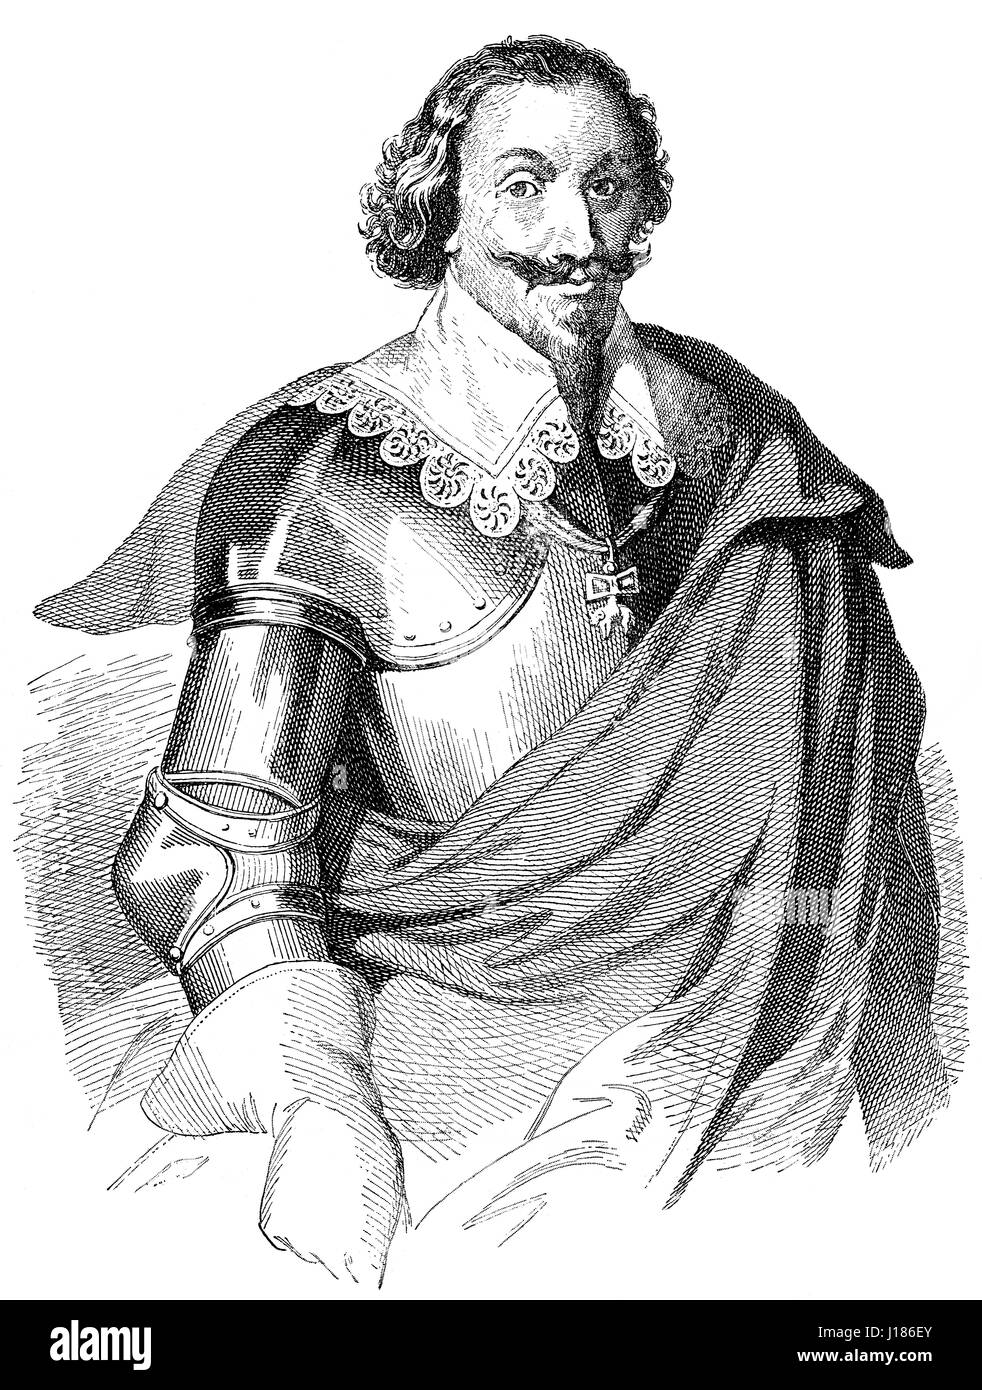 Gottfried Heinrich Graf zu Pappenheim, 1594 - 1632, a general in the Thirty Years' War for the Catholic League - Stock Image